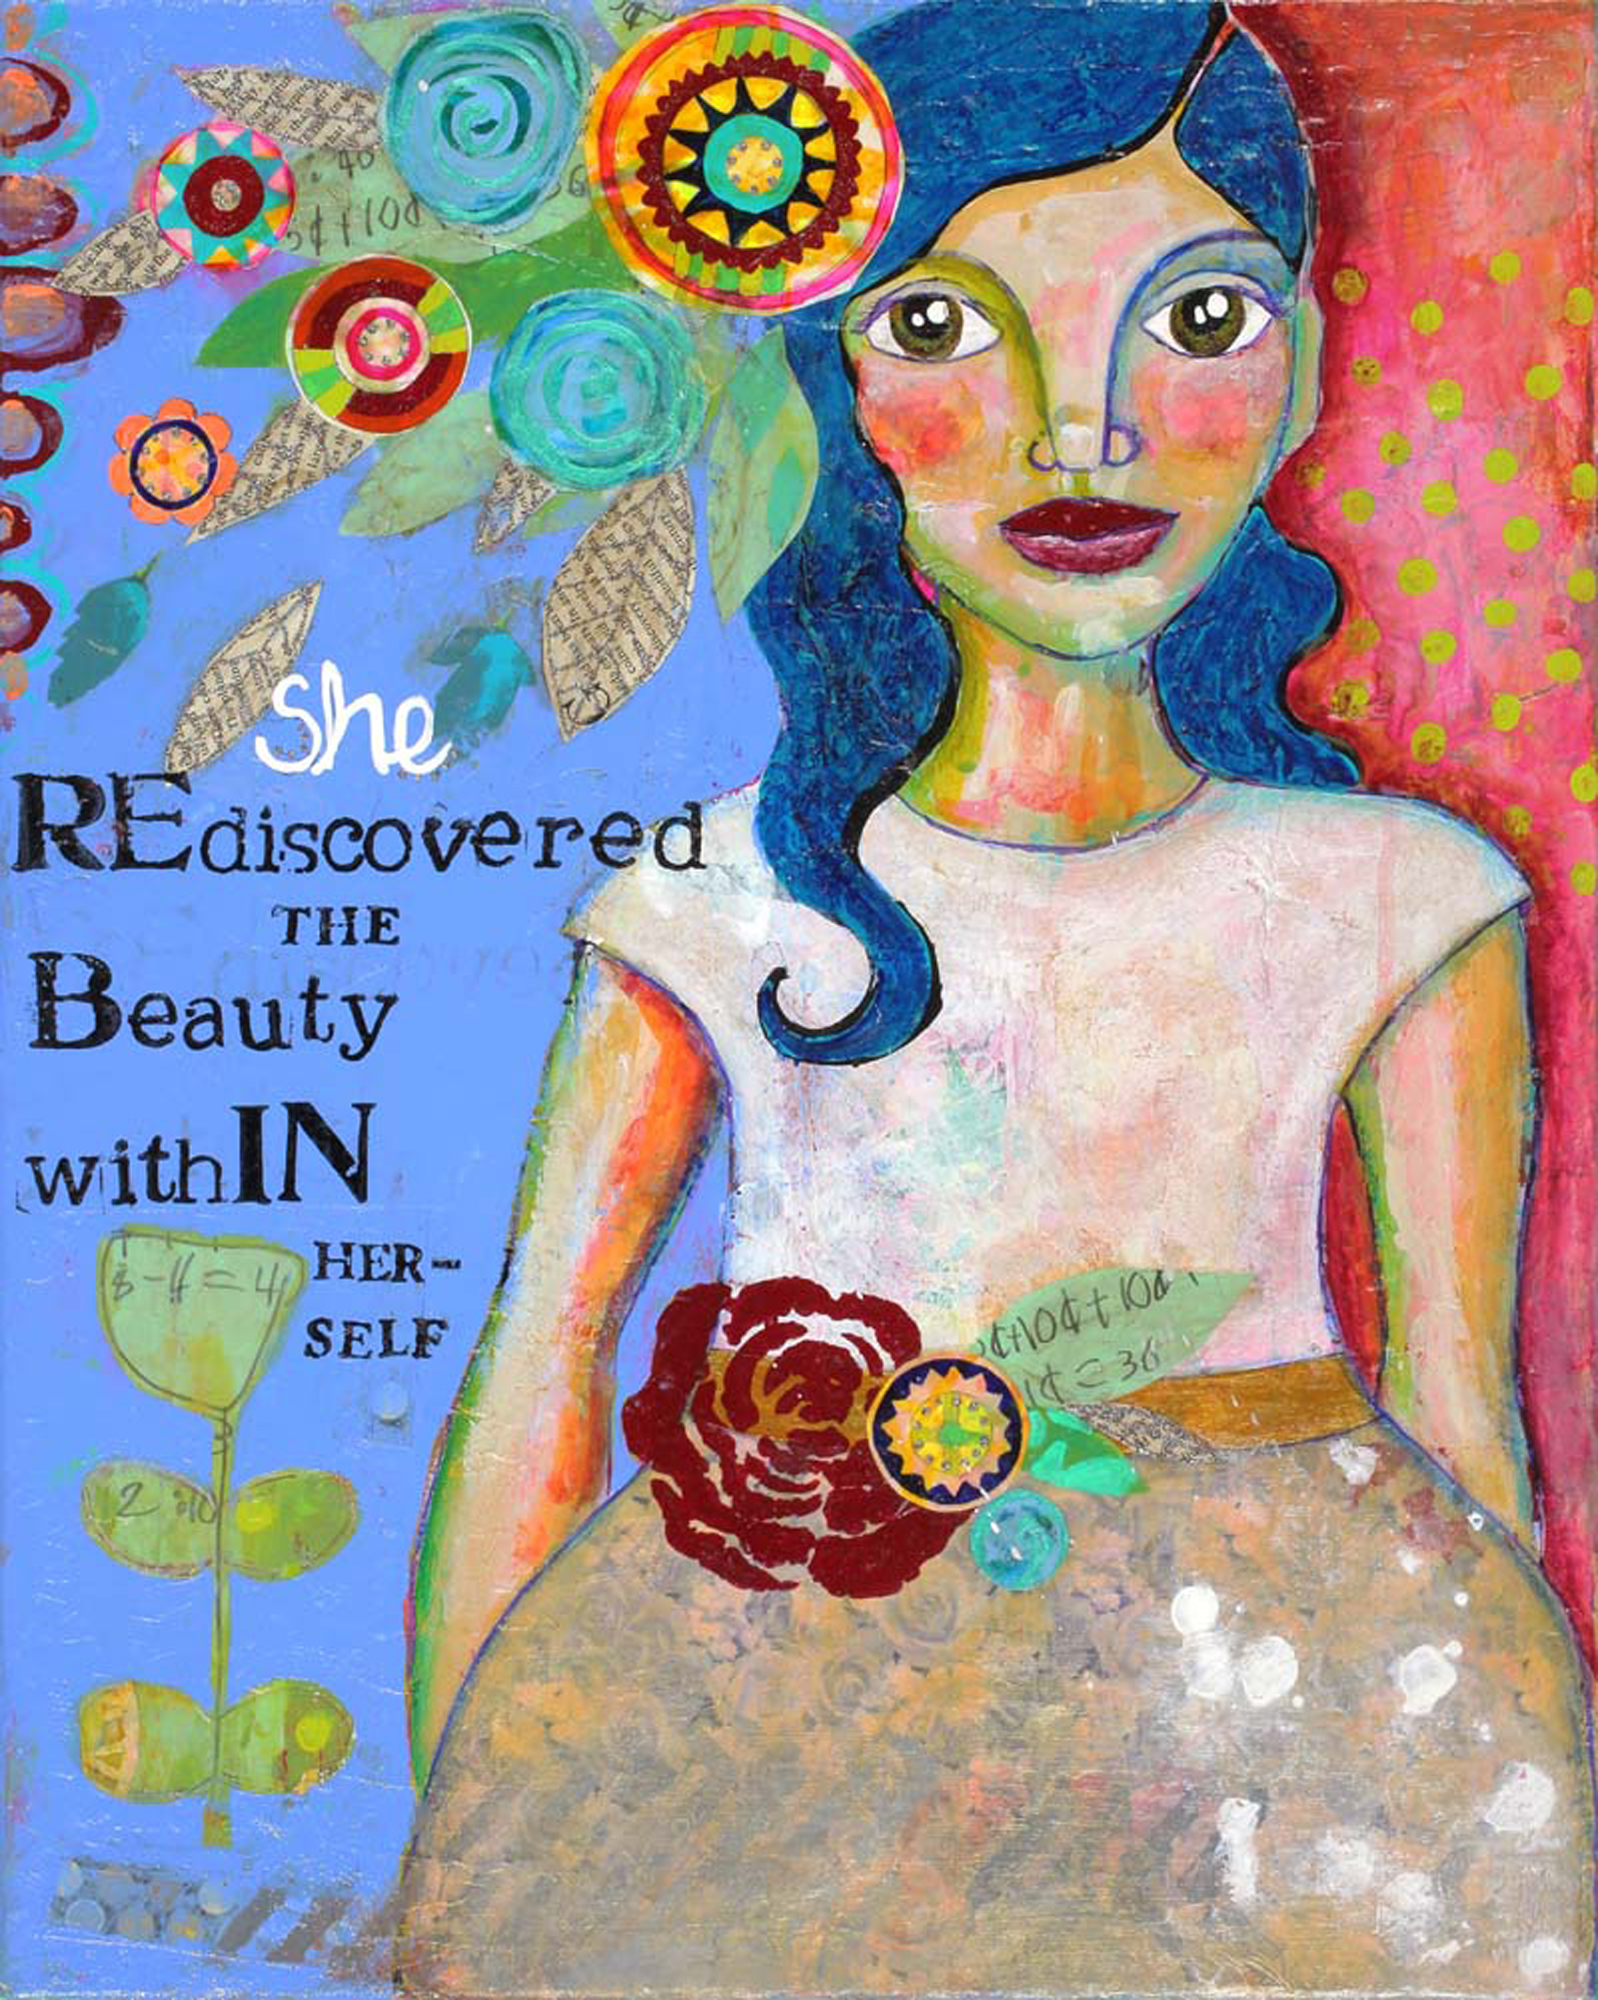 She Rediscovered The Beauty Within Herself